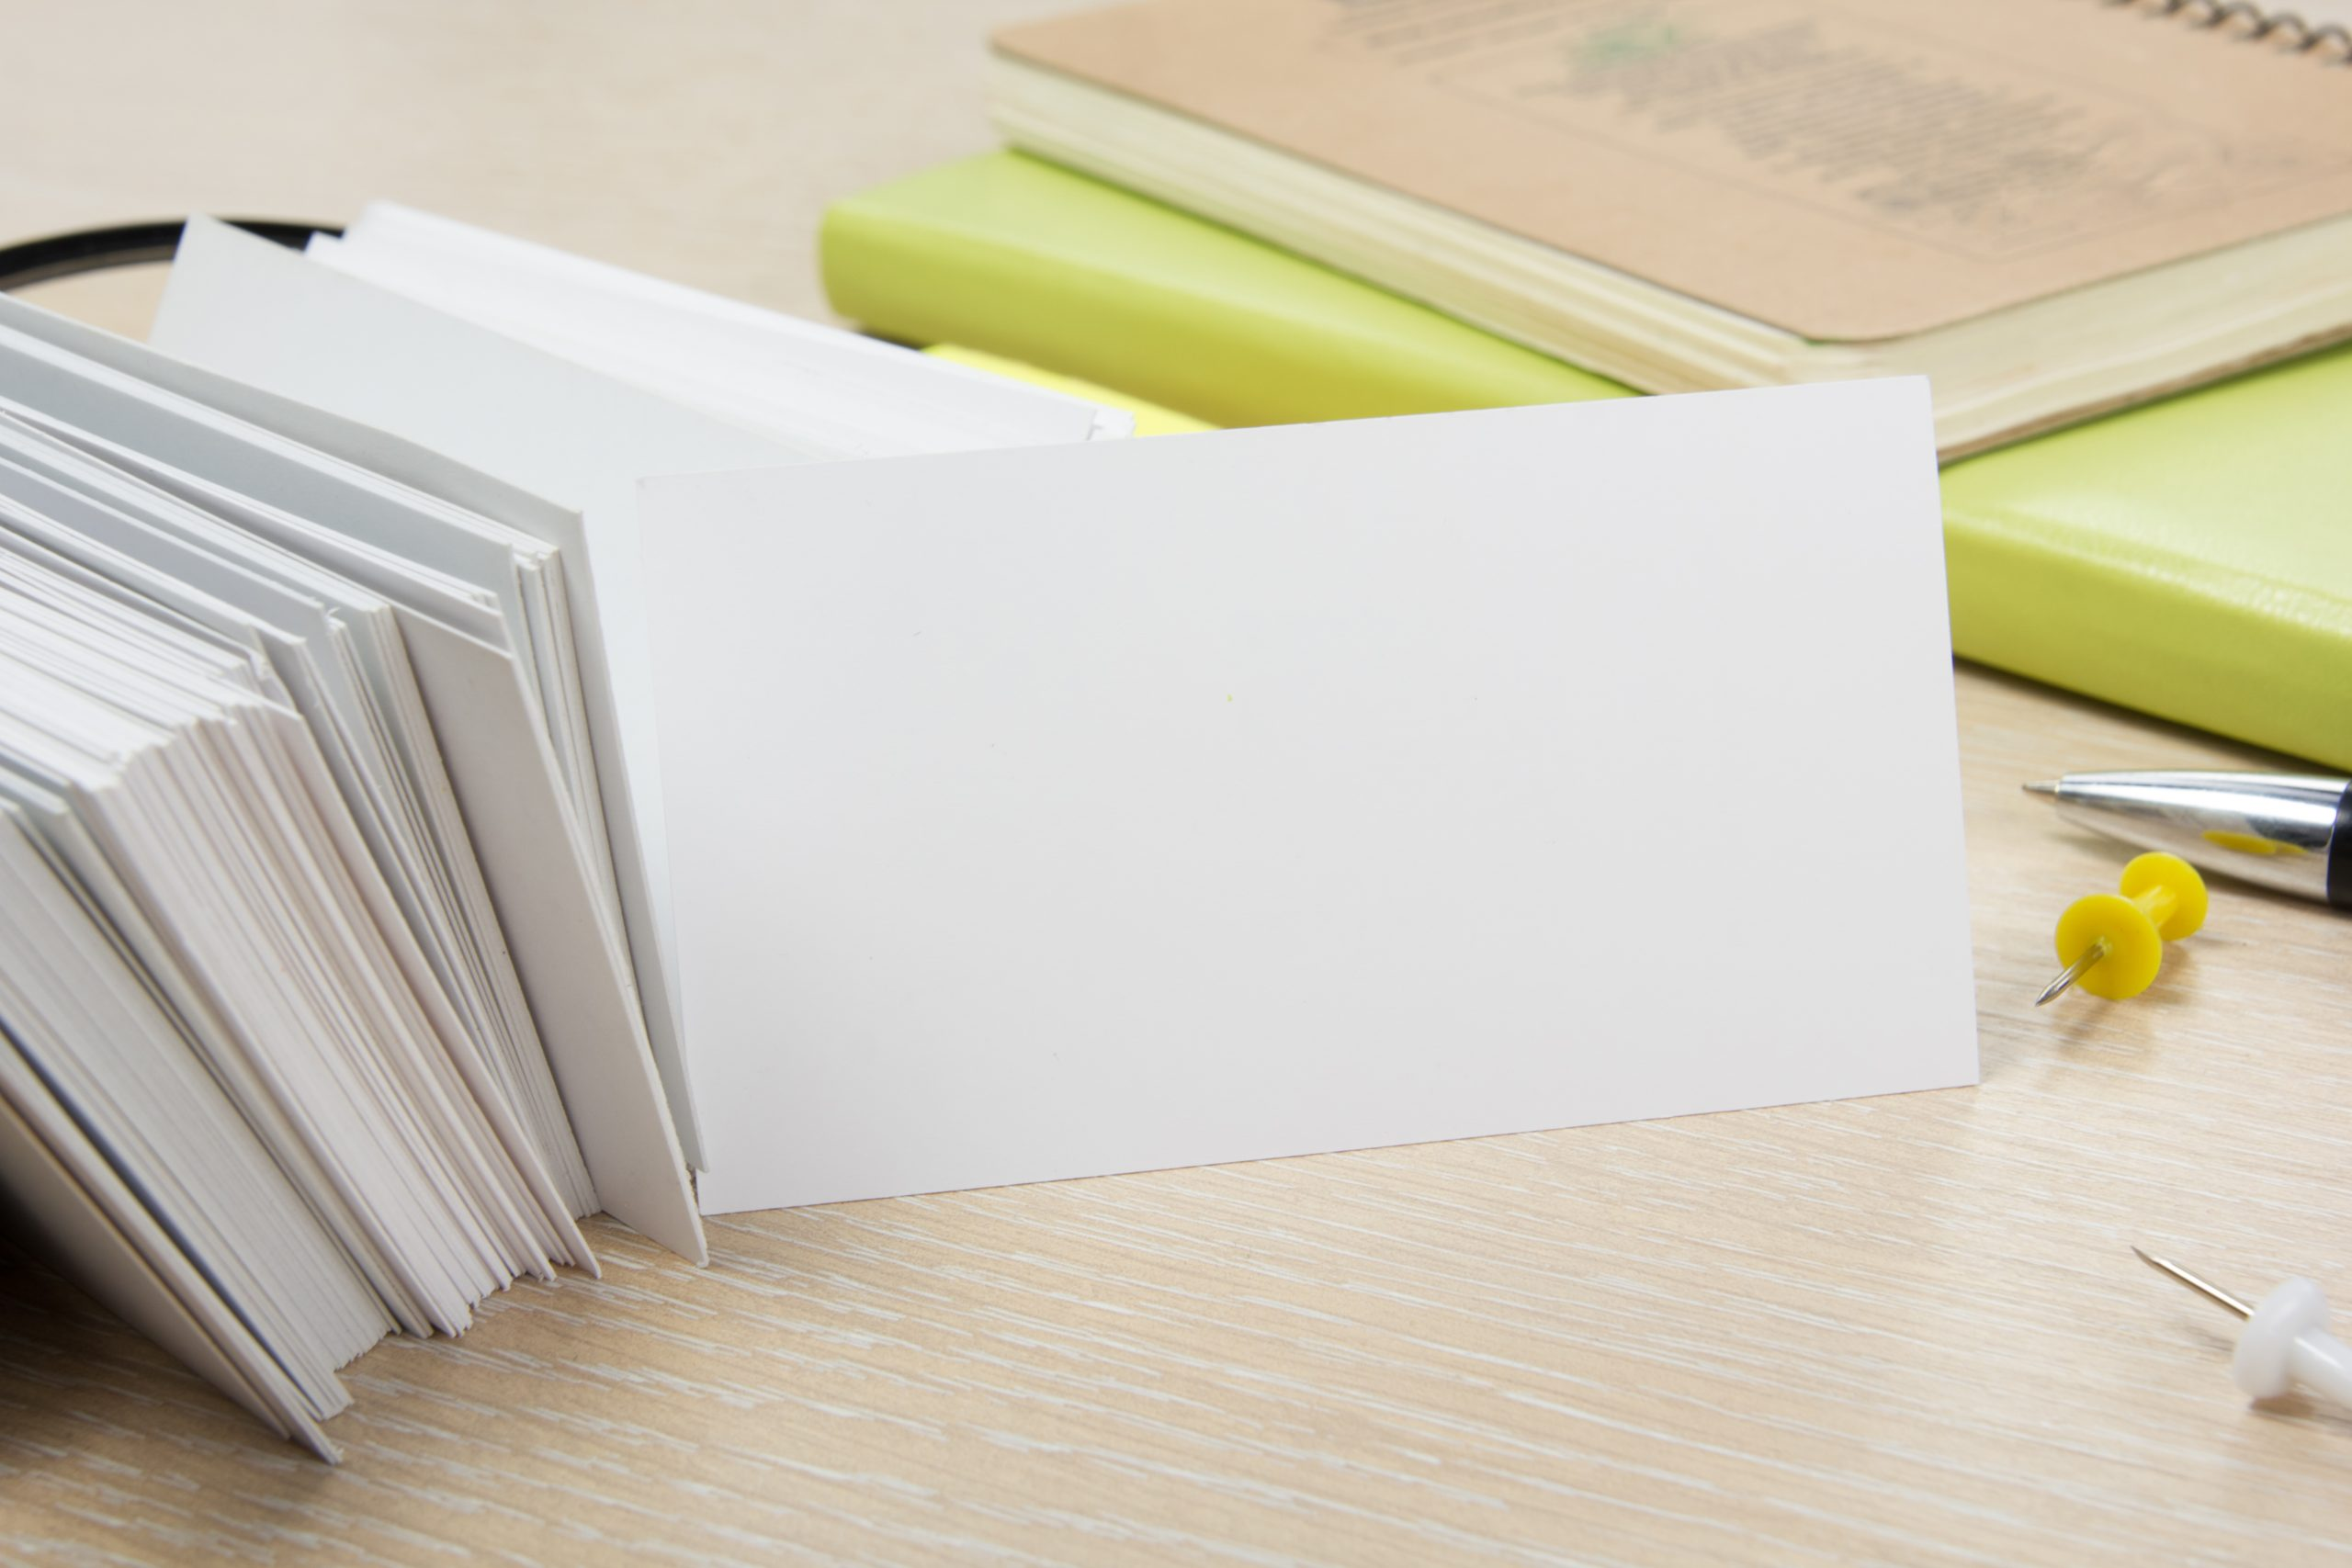 White blank business card. Office table desk with set of colorful supplies, cup, pen, pencils, flower, notes, cards on beige desk table background. Top view and copy space for ad text